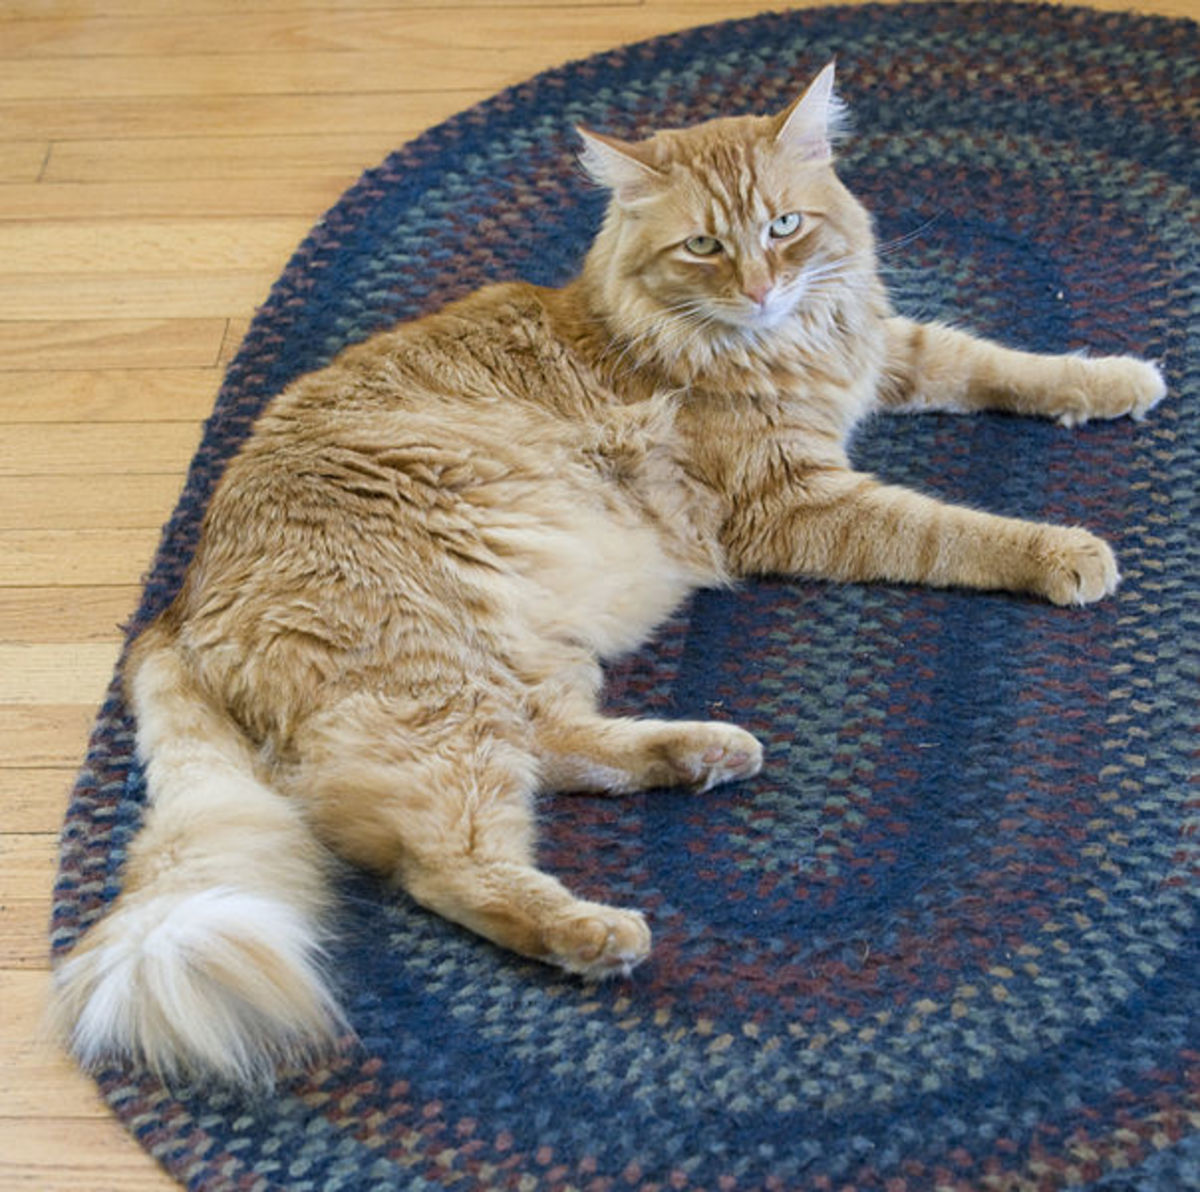 Older cats sometimes face kidney failure.